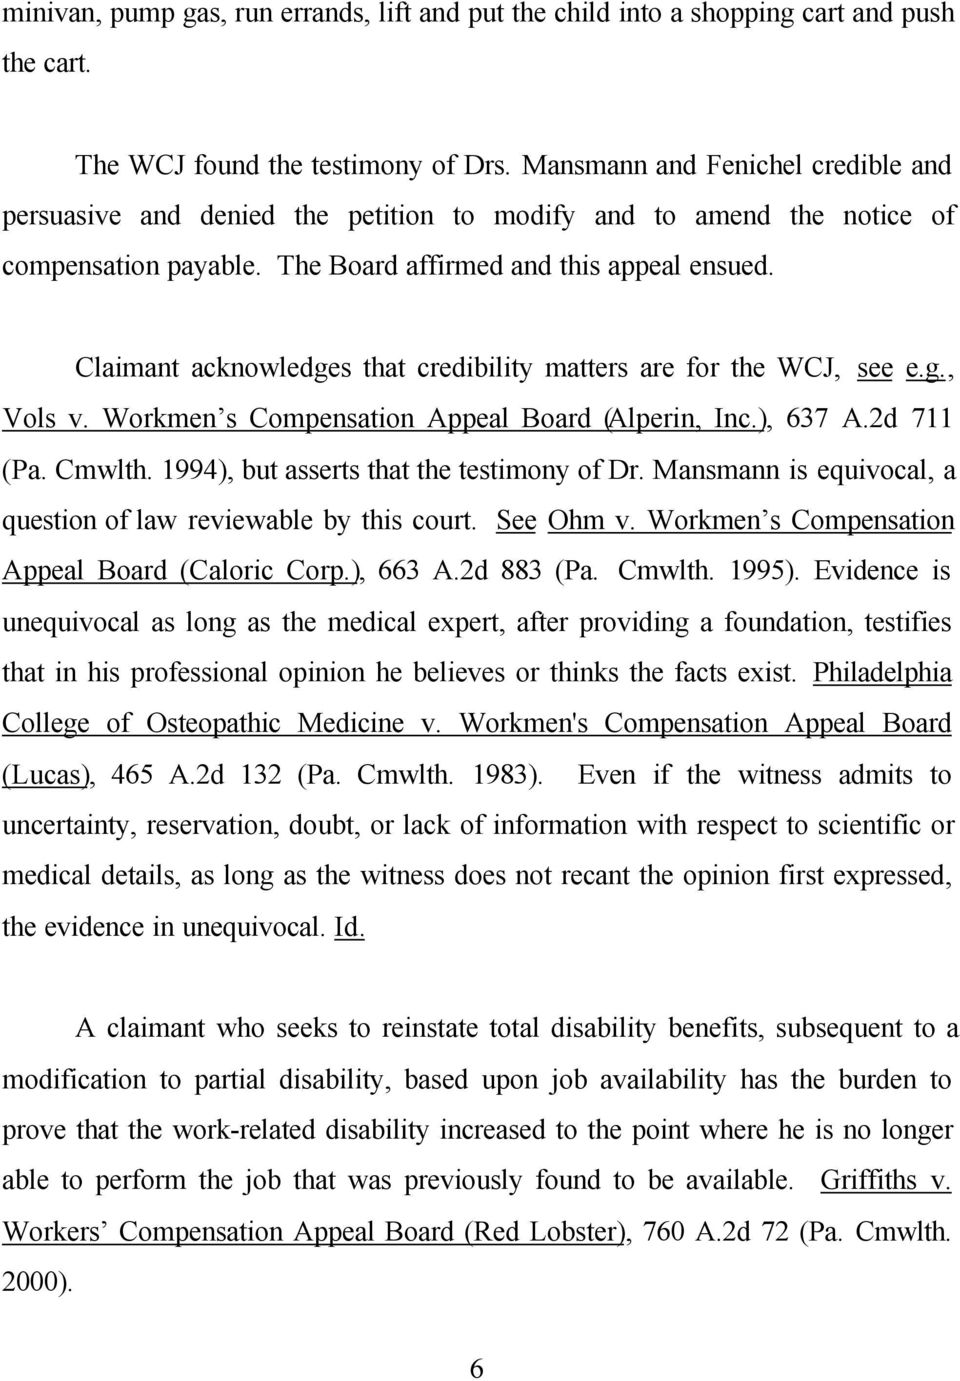 Claimant acknowledges that credibility matters are for the WCJ, see e.g., Vols v. Workmen s Compensation Appeal Board (Alperin, Inc.), 637 A.2d 711 (Pa. Cmwlth.